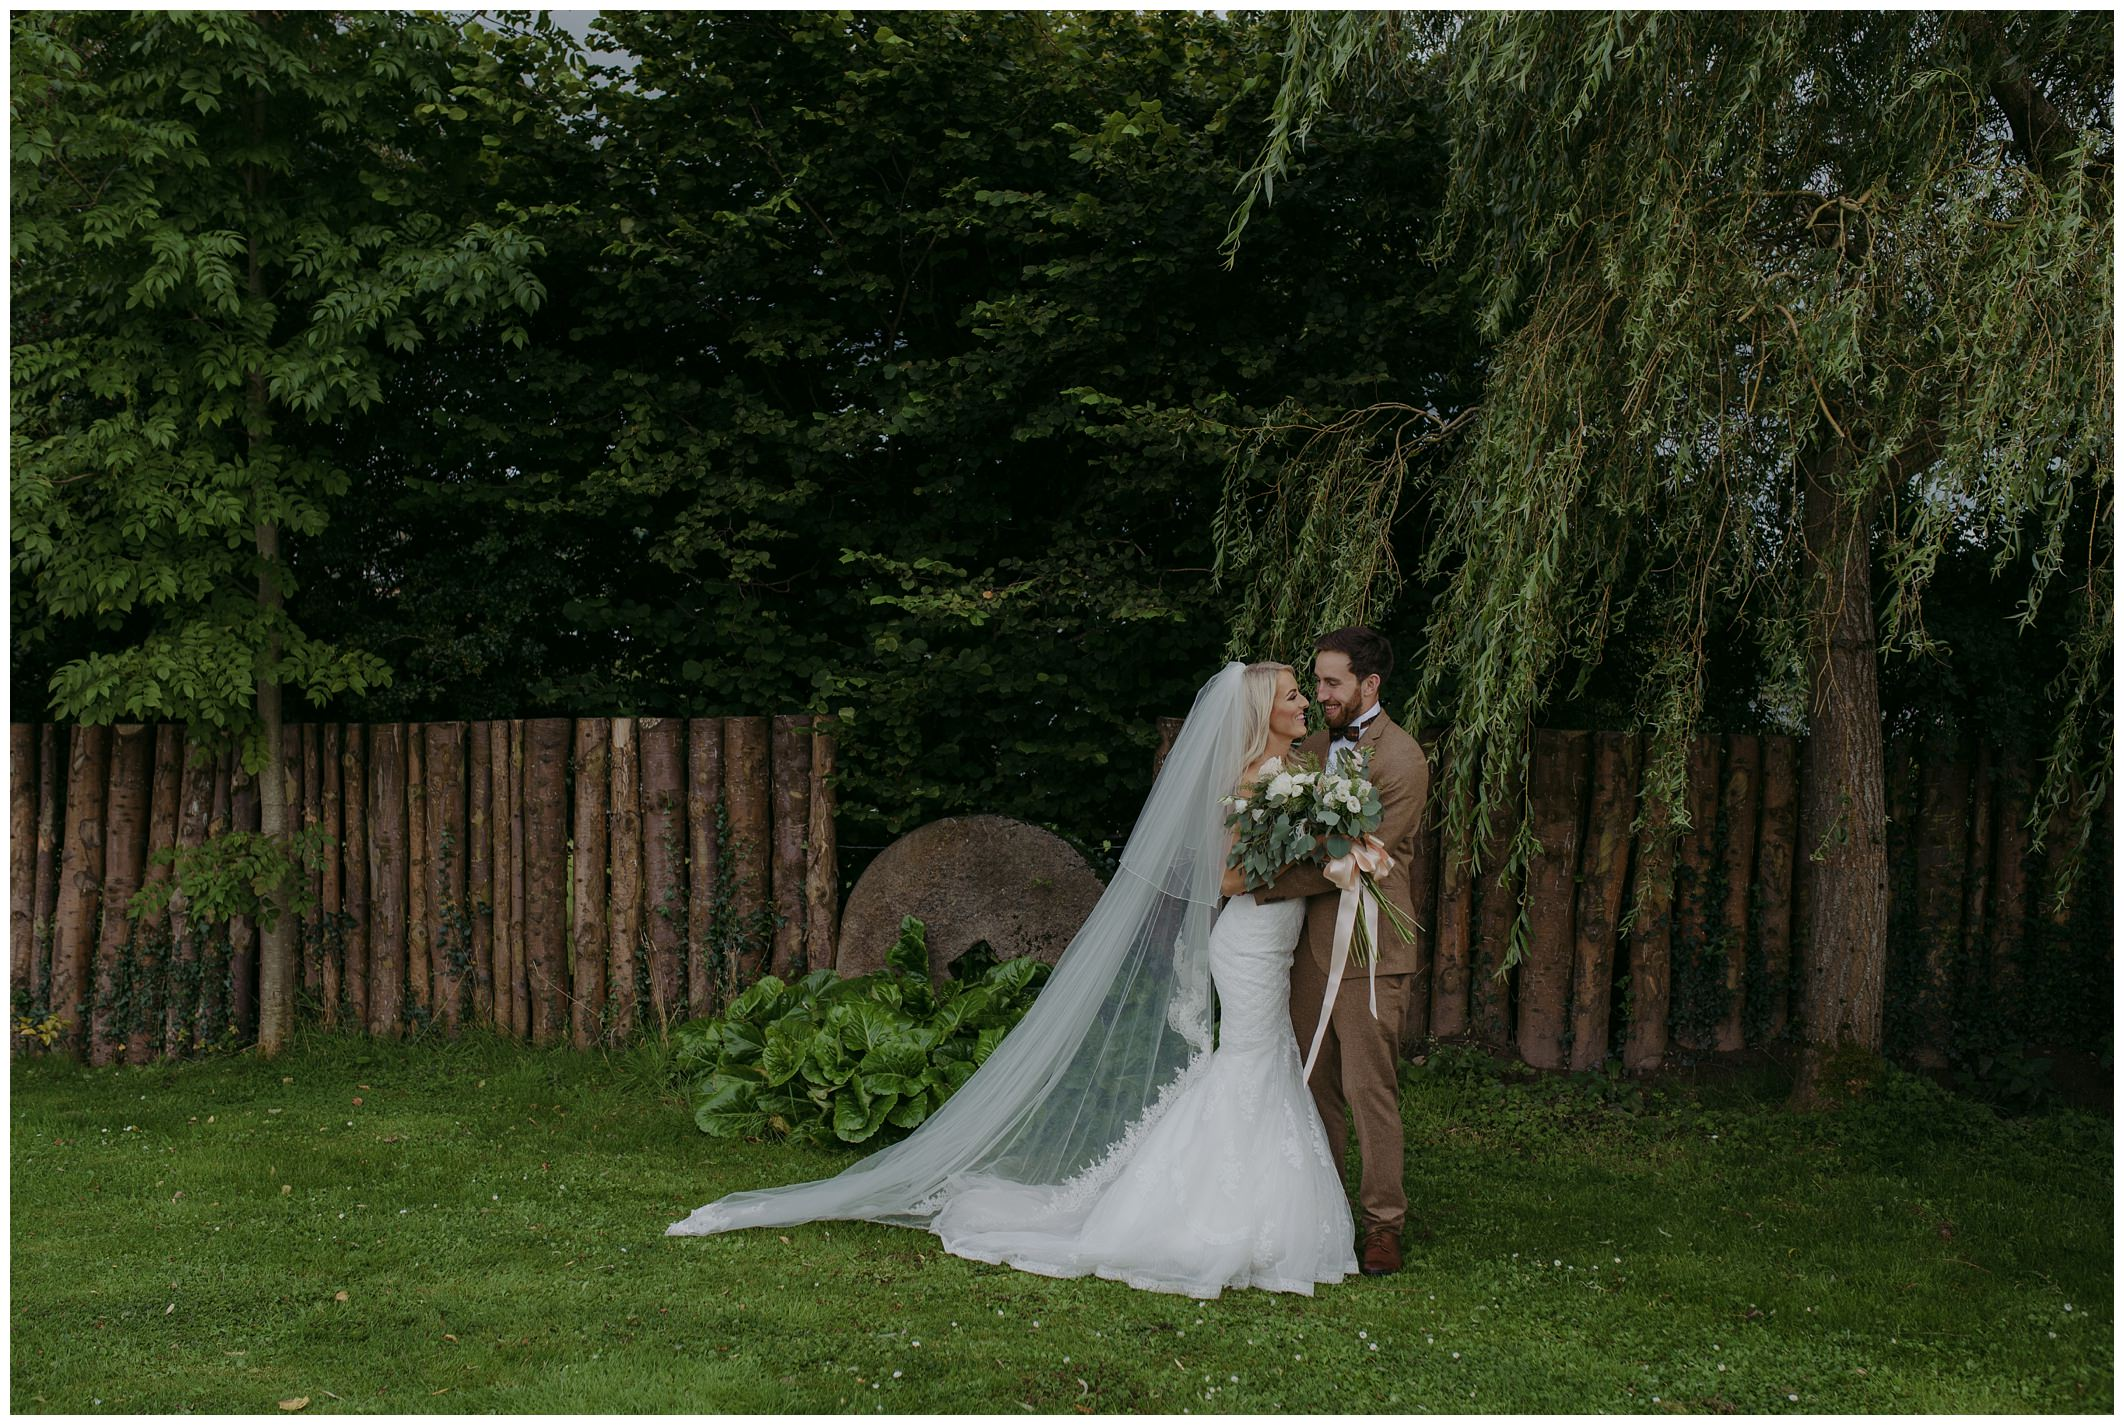 tara_neil_the_mill_alternative_quirky_wedding_jude_browne_photography_0132.jpg